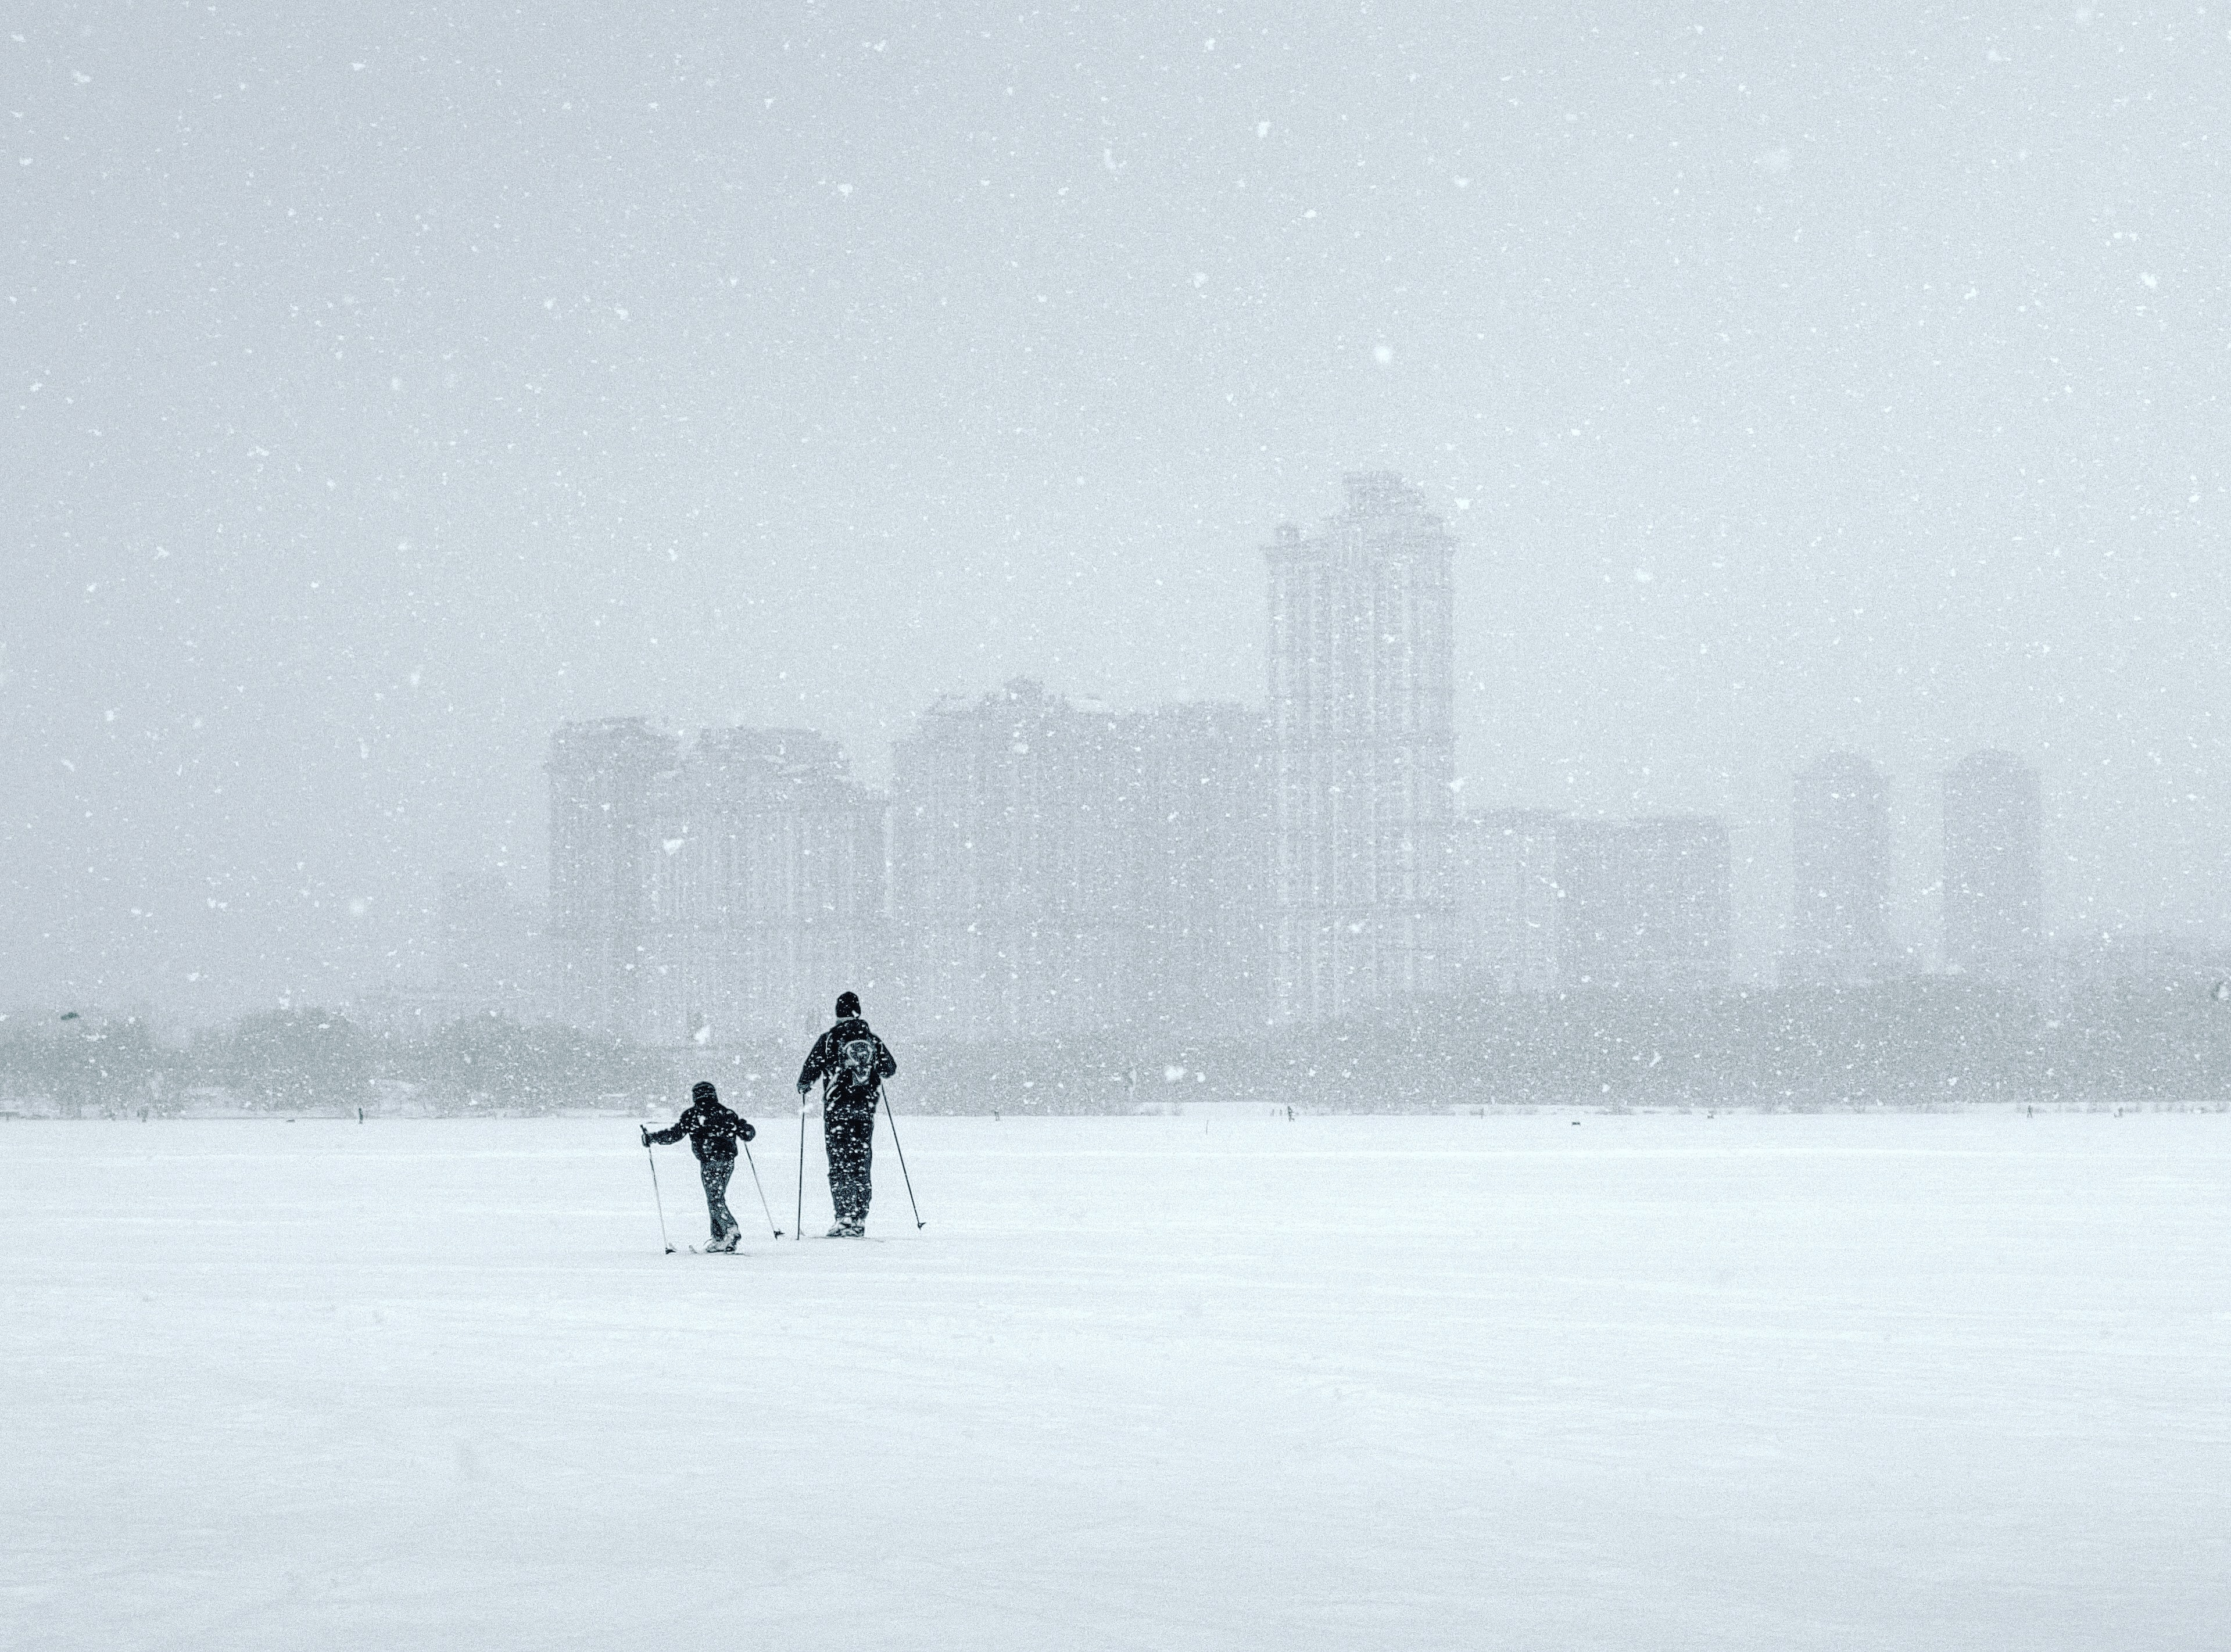 Adult and child in snow on skis near city skyline